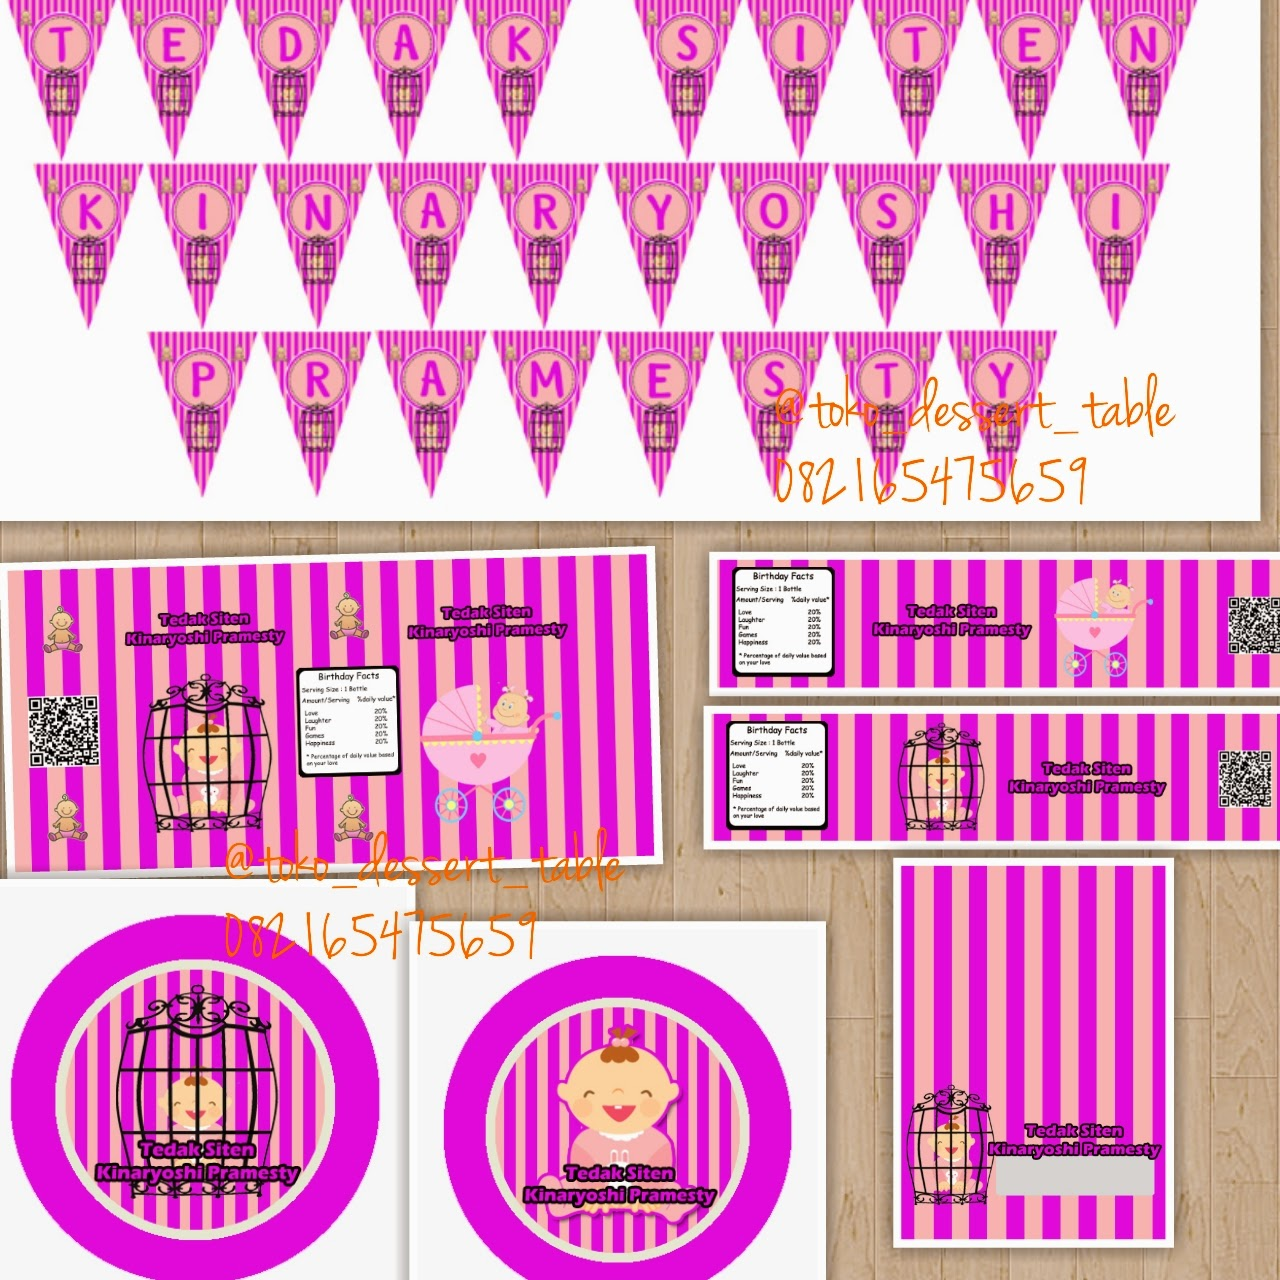 Toko Dessert Table Printable Part 2